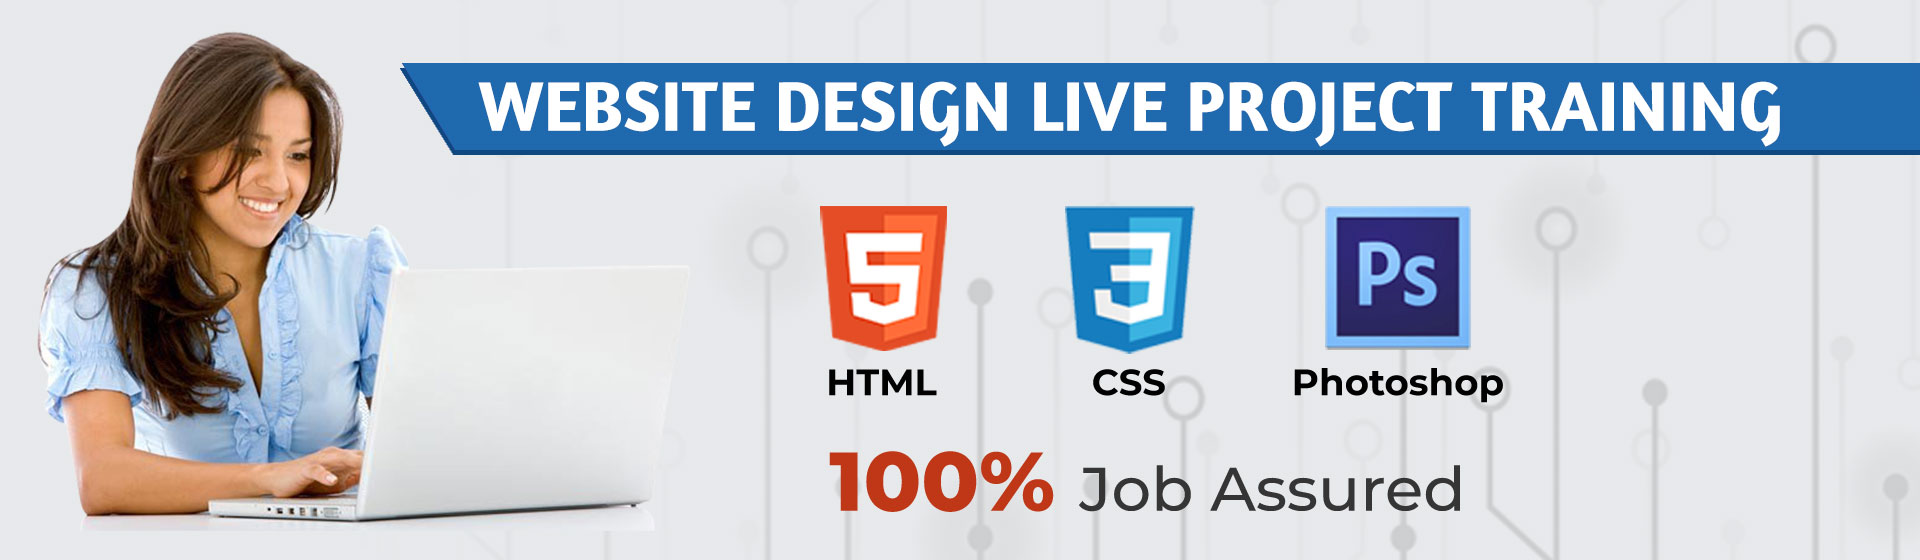 Web Designing Training In Noida Web Designing Course In Delhi